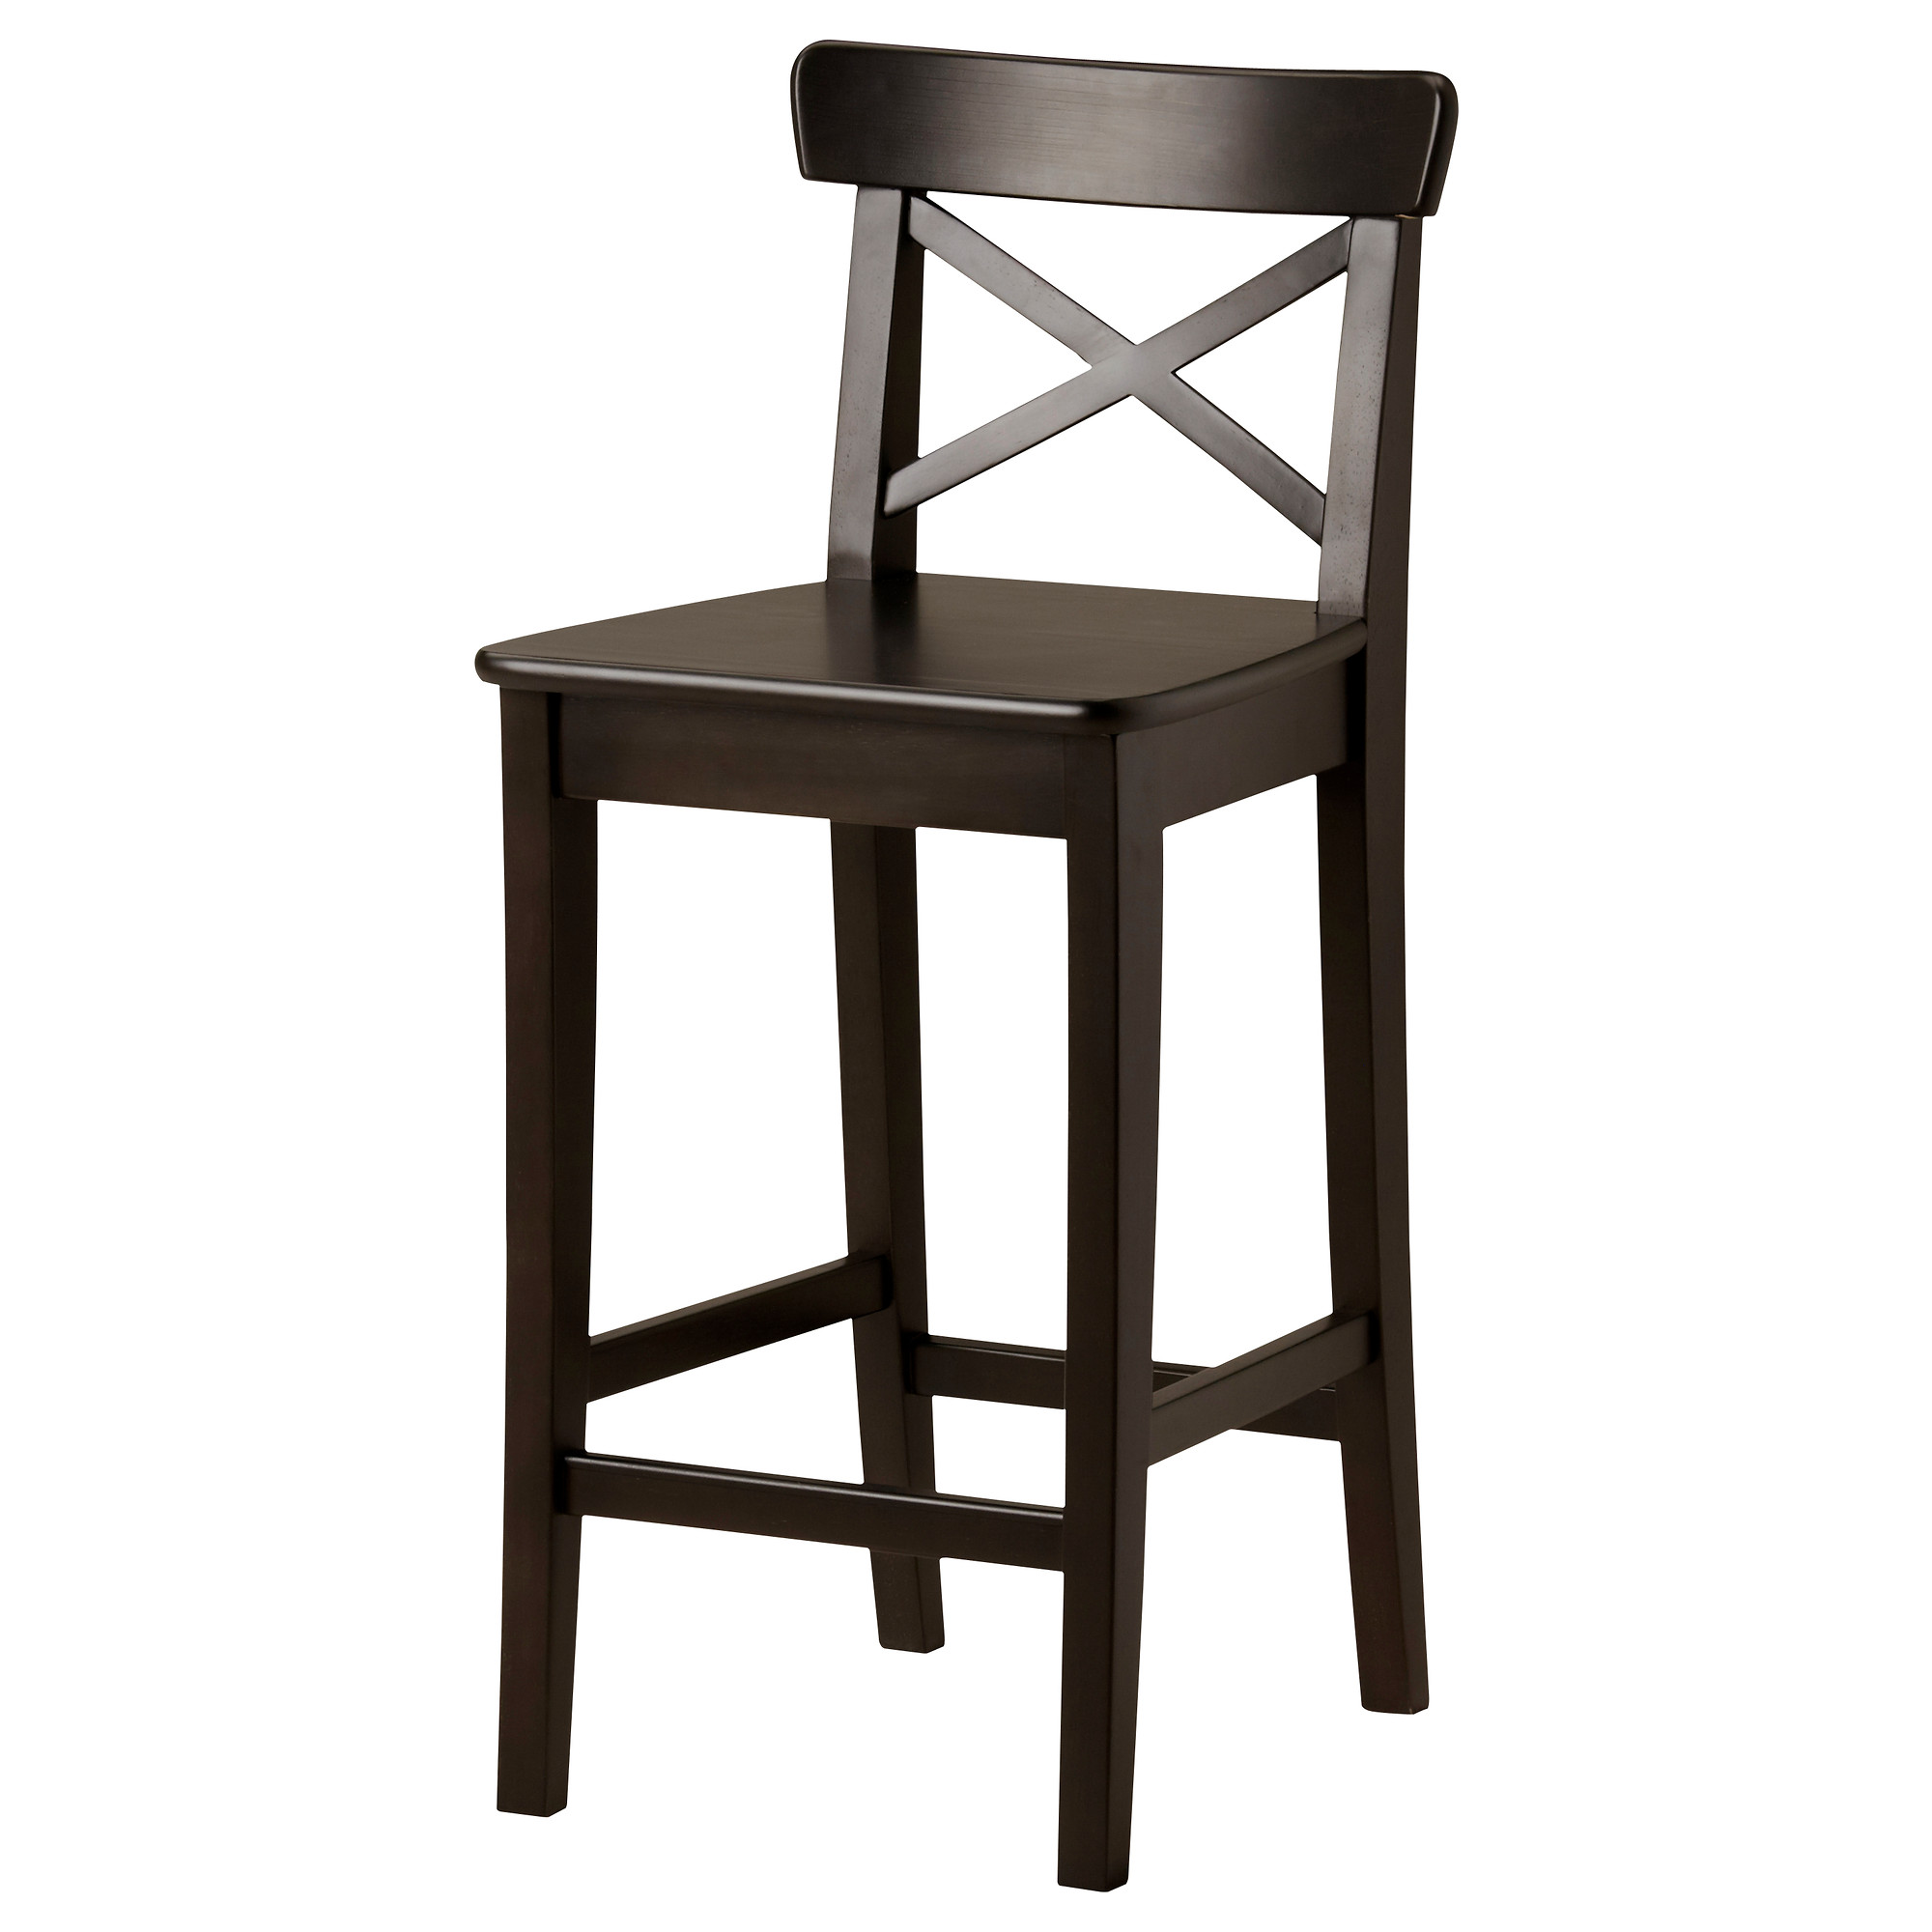 bar stool chairs chair design unique cool stools gives perfection meeting urban